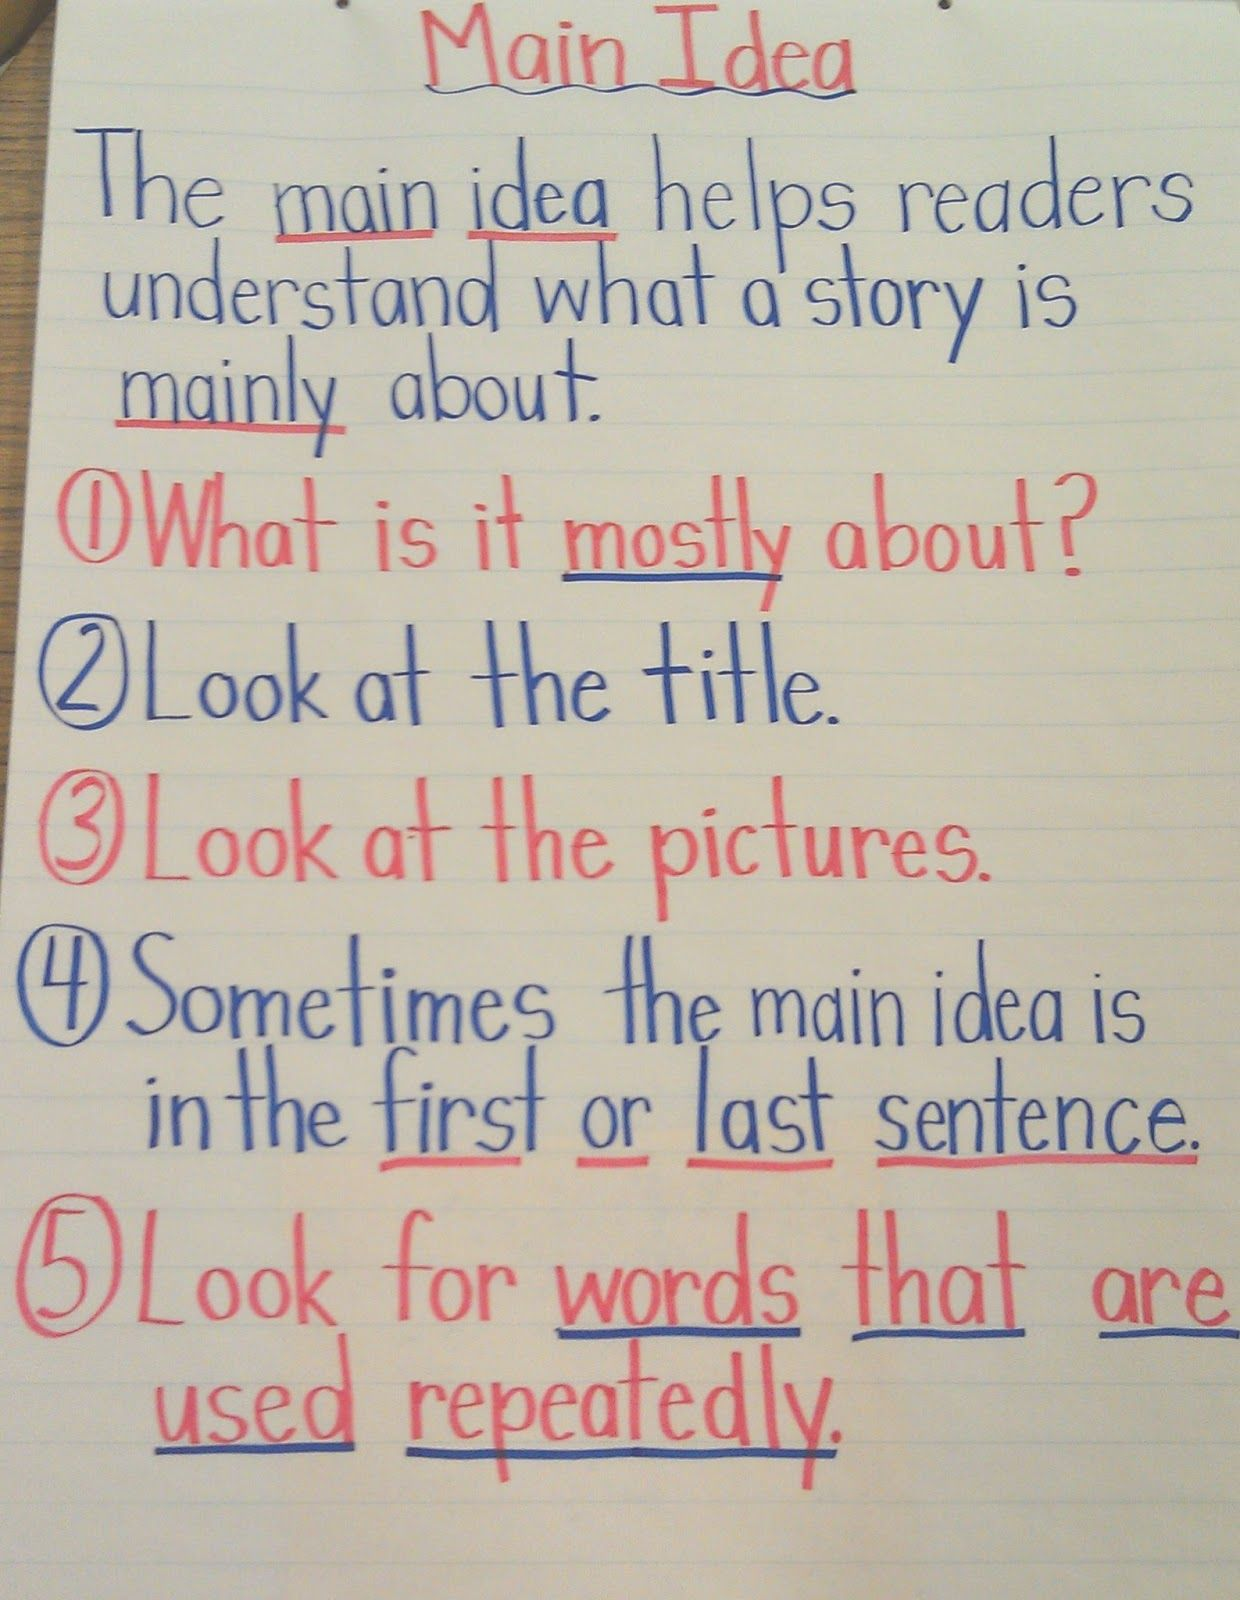 worksheet Finding Main Idea Worksheets 1000 images about main idea on pinterest graphic organizers comprehension and 4th grade reading